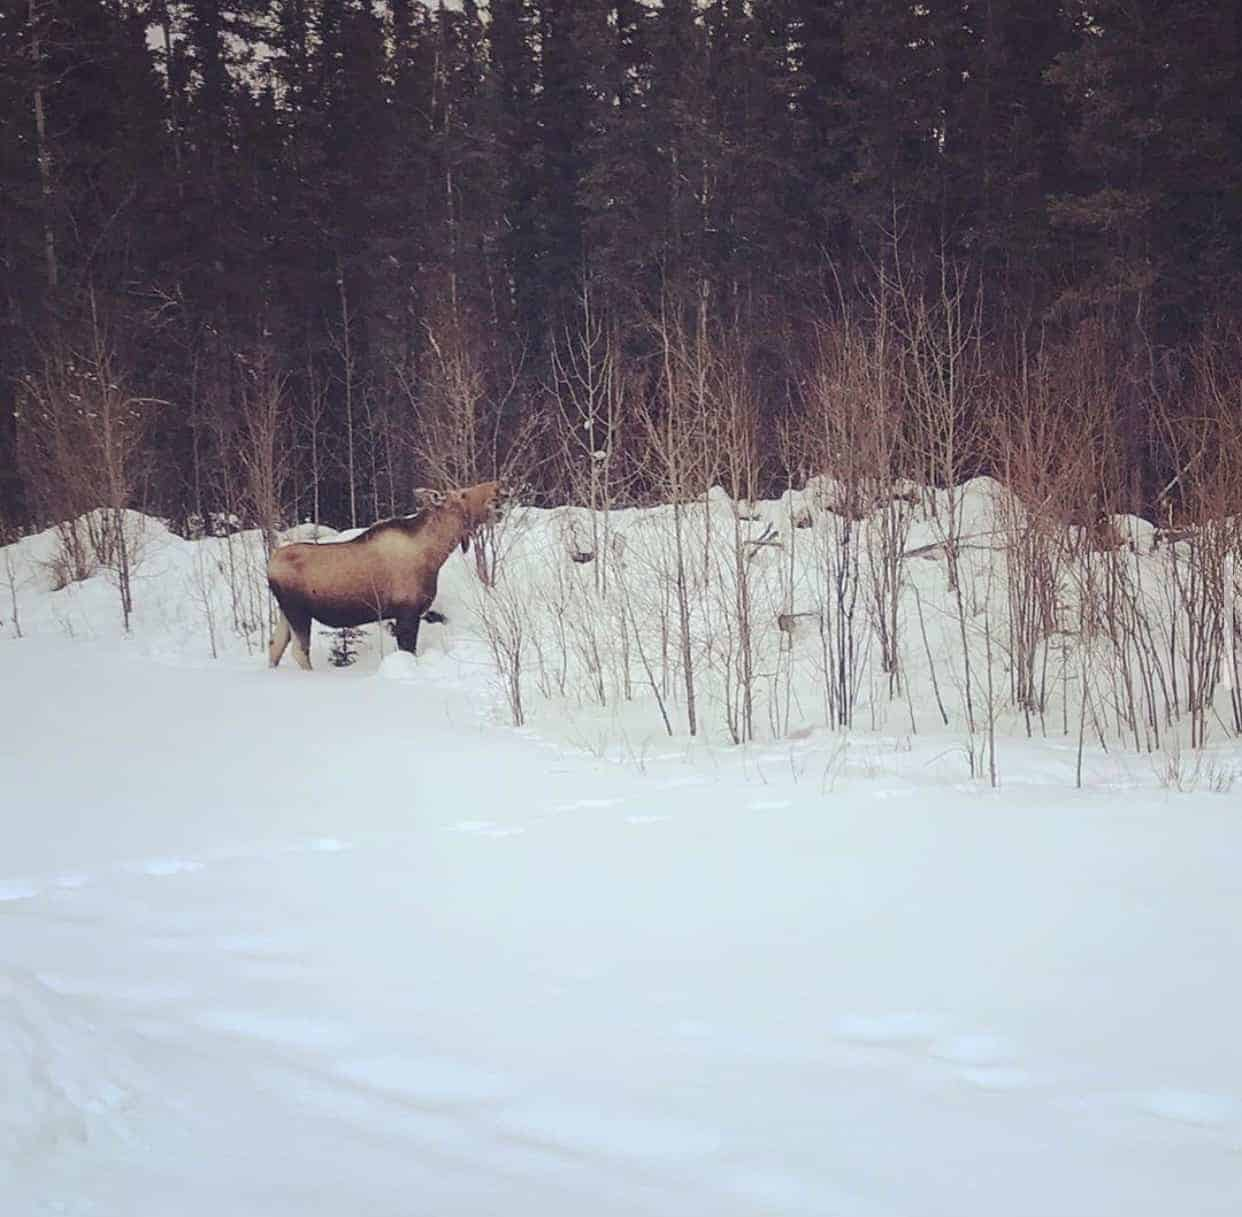 Alaska Moose in Winter